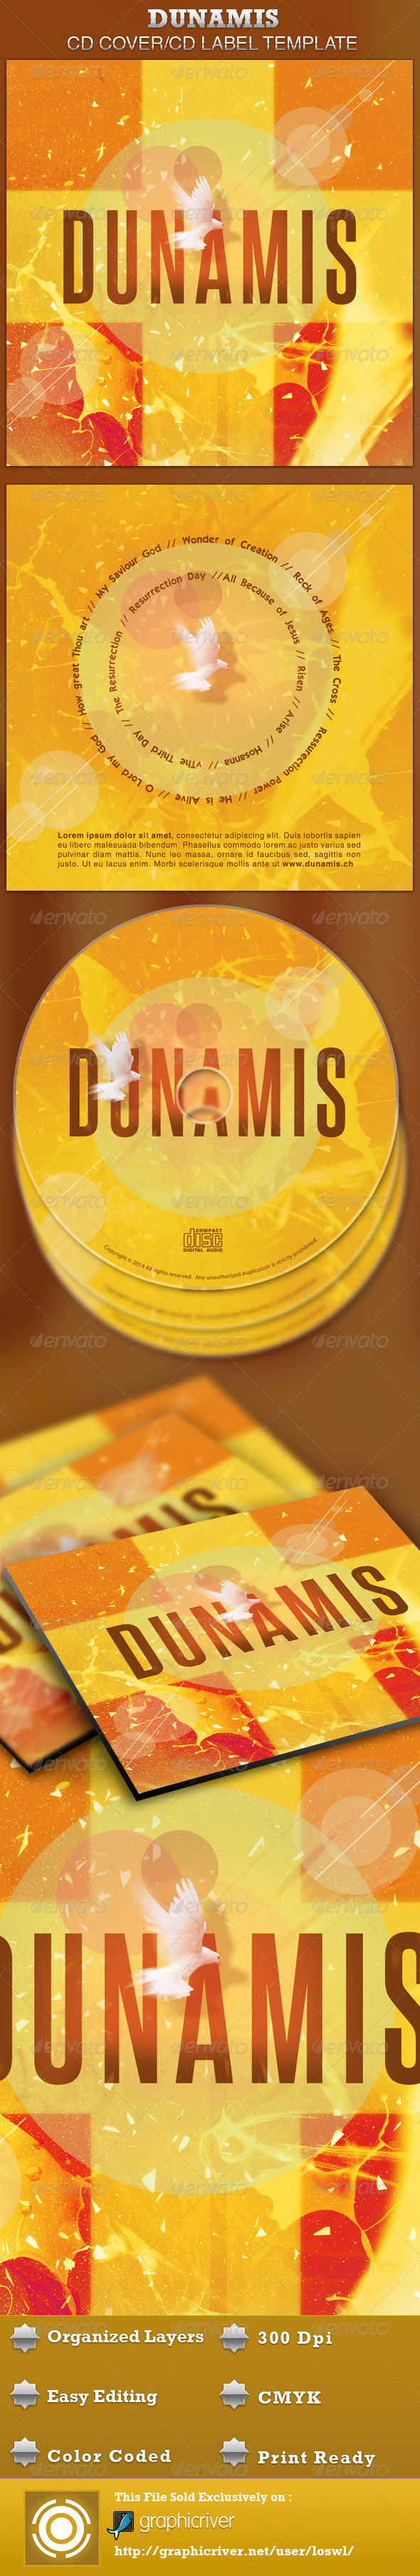 Dunamis CD Artwork Template - CD & DVD artwork Print Templates